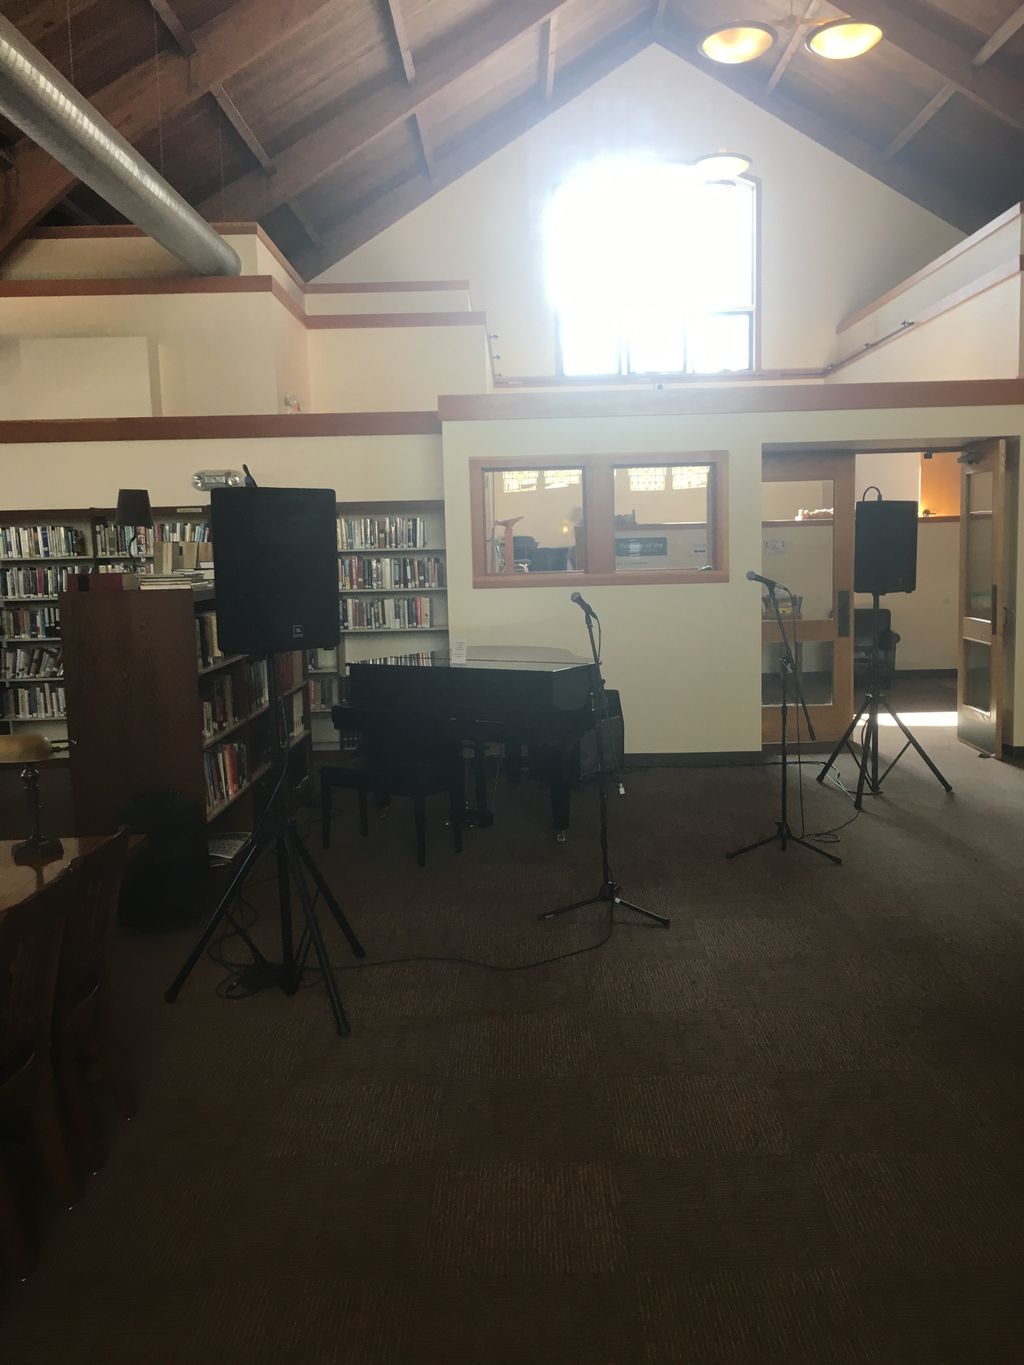 Sound reinforcement rental for jazz band in library